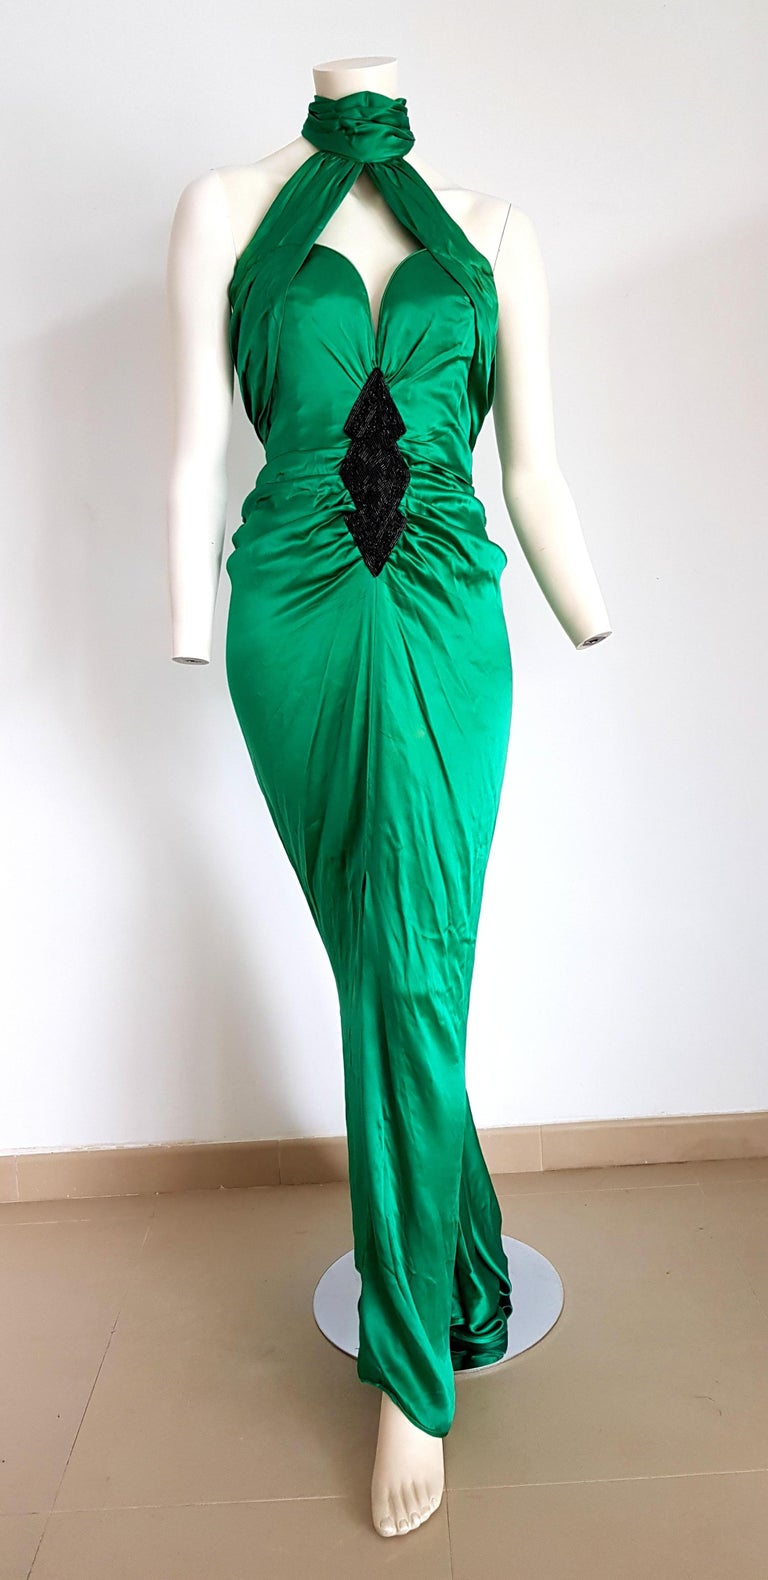 VALENTINO Haute Couture Green, Black Beading Design on Waist, Silk Gown Evening Dress - Unworn, New.  SIZE: equivalent to about Small / Medium, please review approx measurements as follows in cm: lenght 152, chest underarm to underarm 50, bust